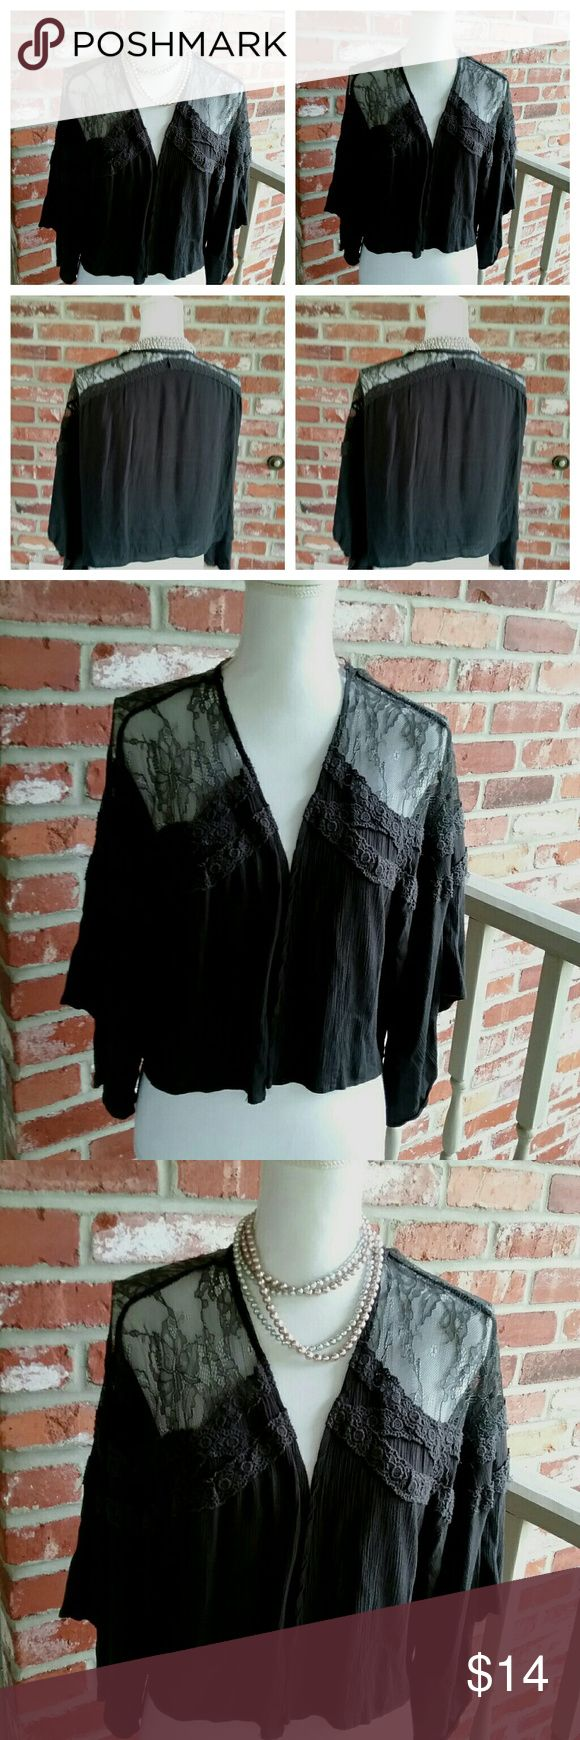 Ladies Hint if Mint Black Lace Shrug Jacket Med This is a Ladies Hint of Mint brand black lace shrug jacket. It is very thin and nice fir summer. It is size medium. It is being sold without flaws or stains Hint of Mint Jackets & Coats Capes